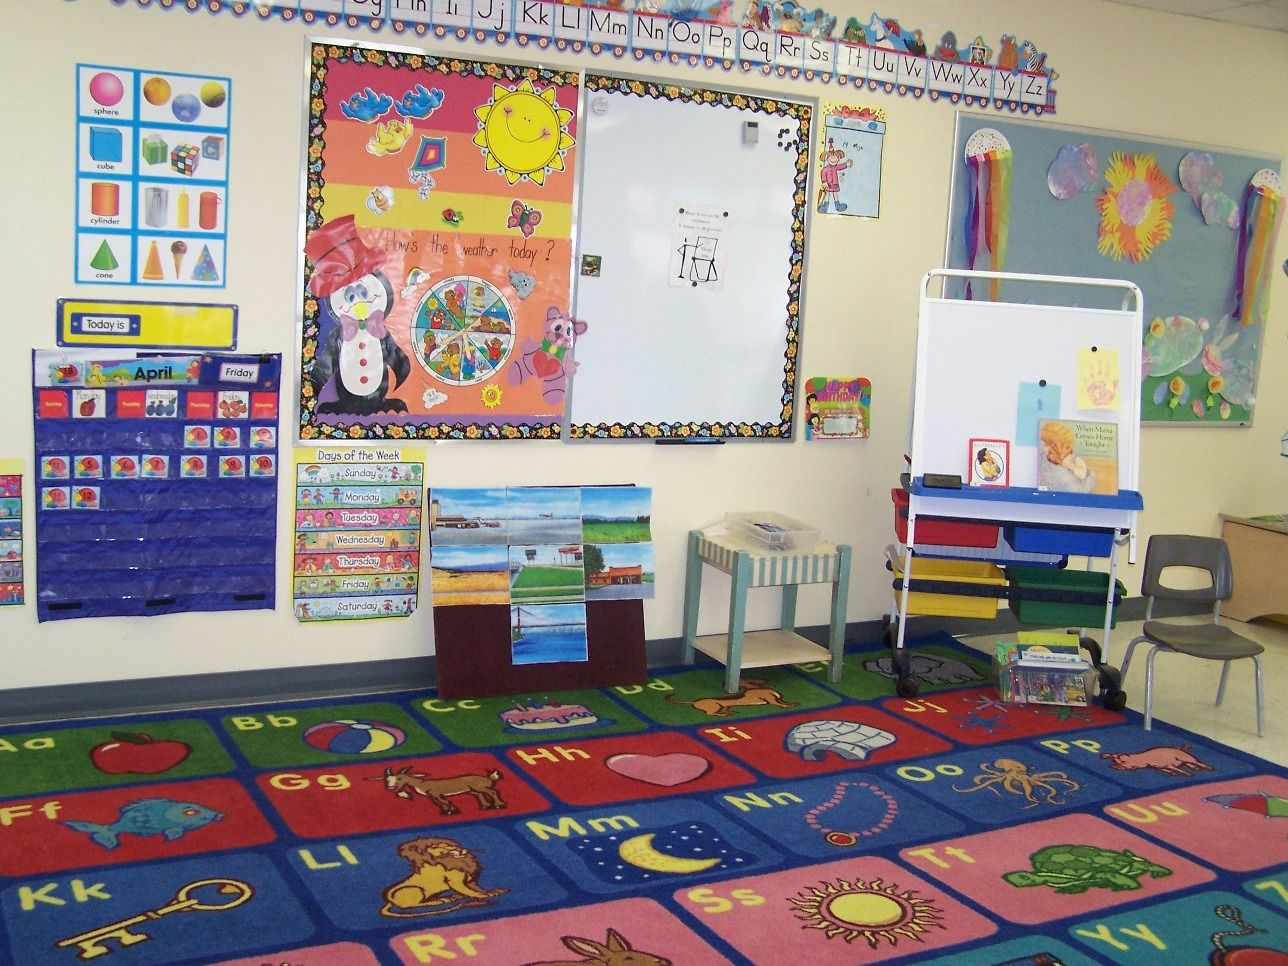 Preschool Classroom Decoration Images : My classroom will be full of learning numbers shapes